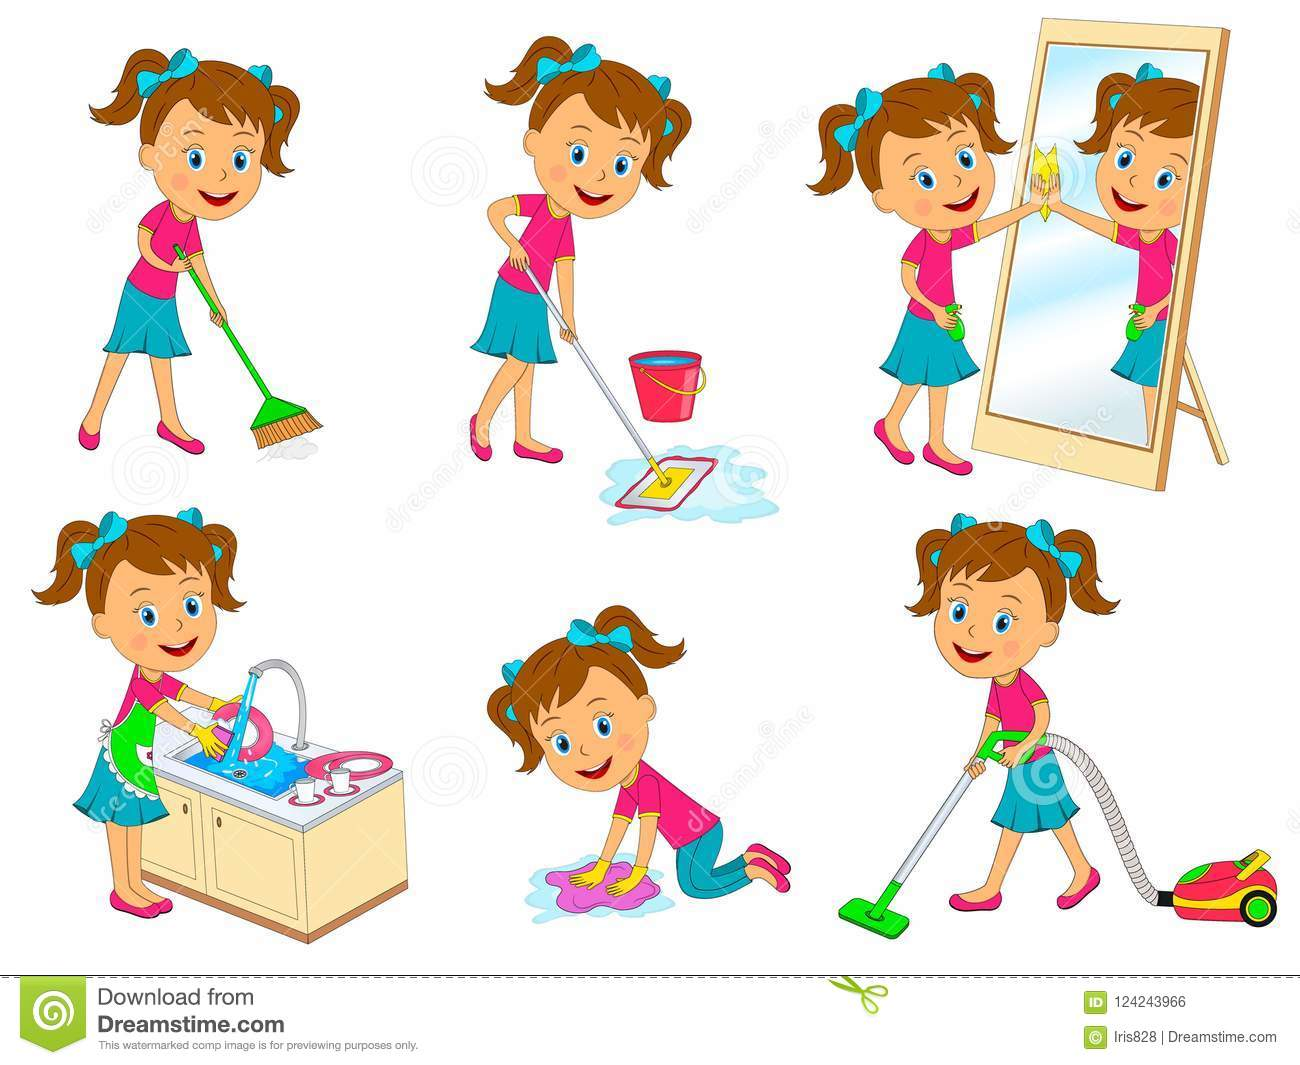 Cartoon Images Of Kids Doing Chores